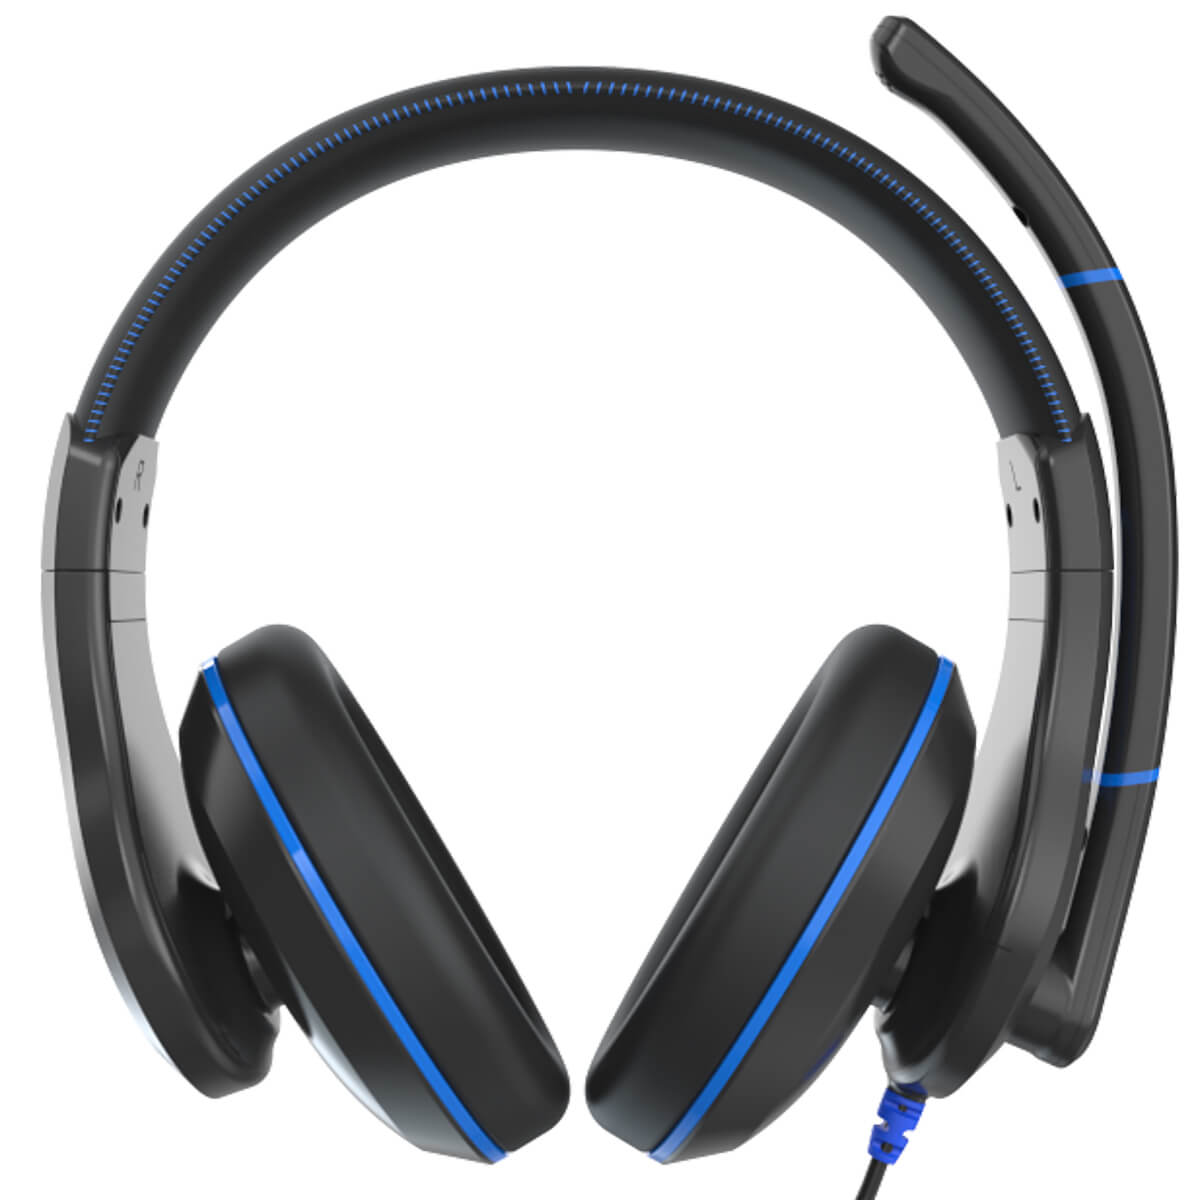 Ultra Durable Pro Headsets with USB plug - Learning Headphones